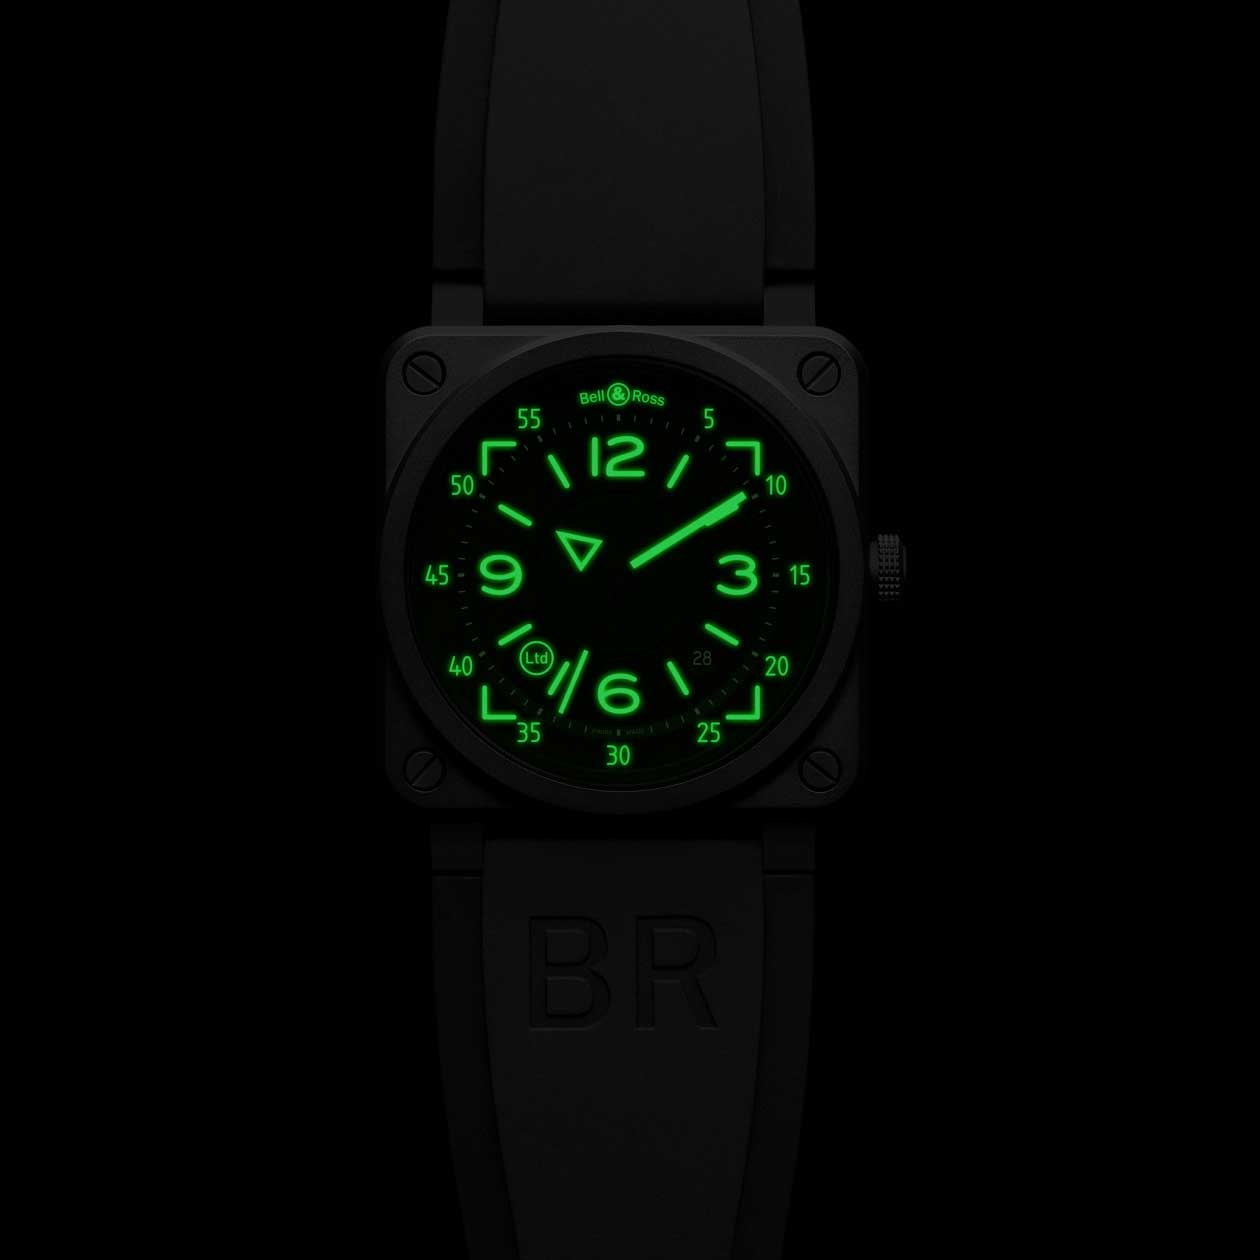 The Bell & Ross BR 03-92 H.U.D in the dark